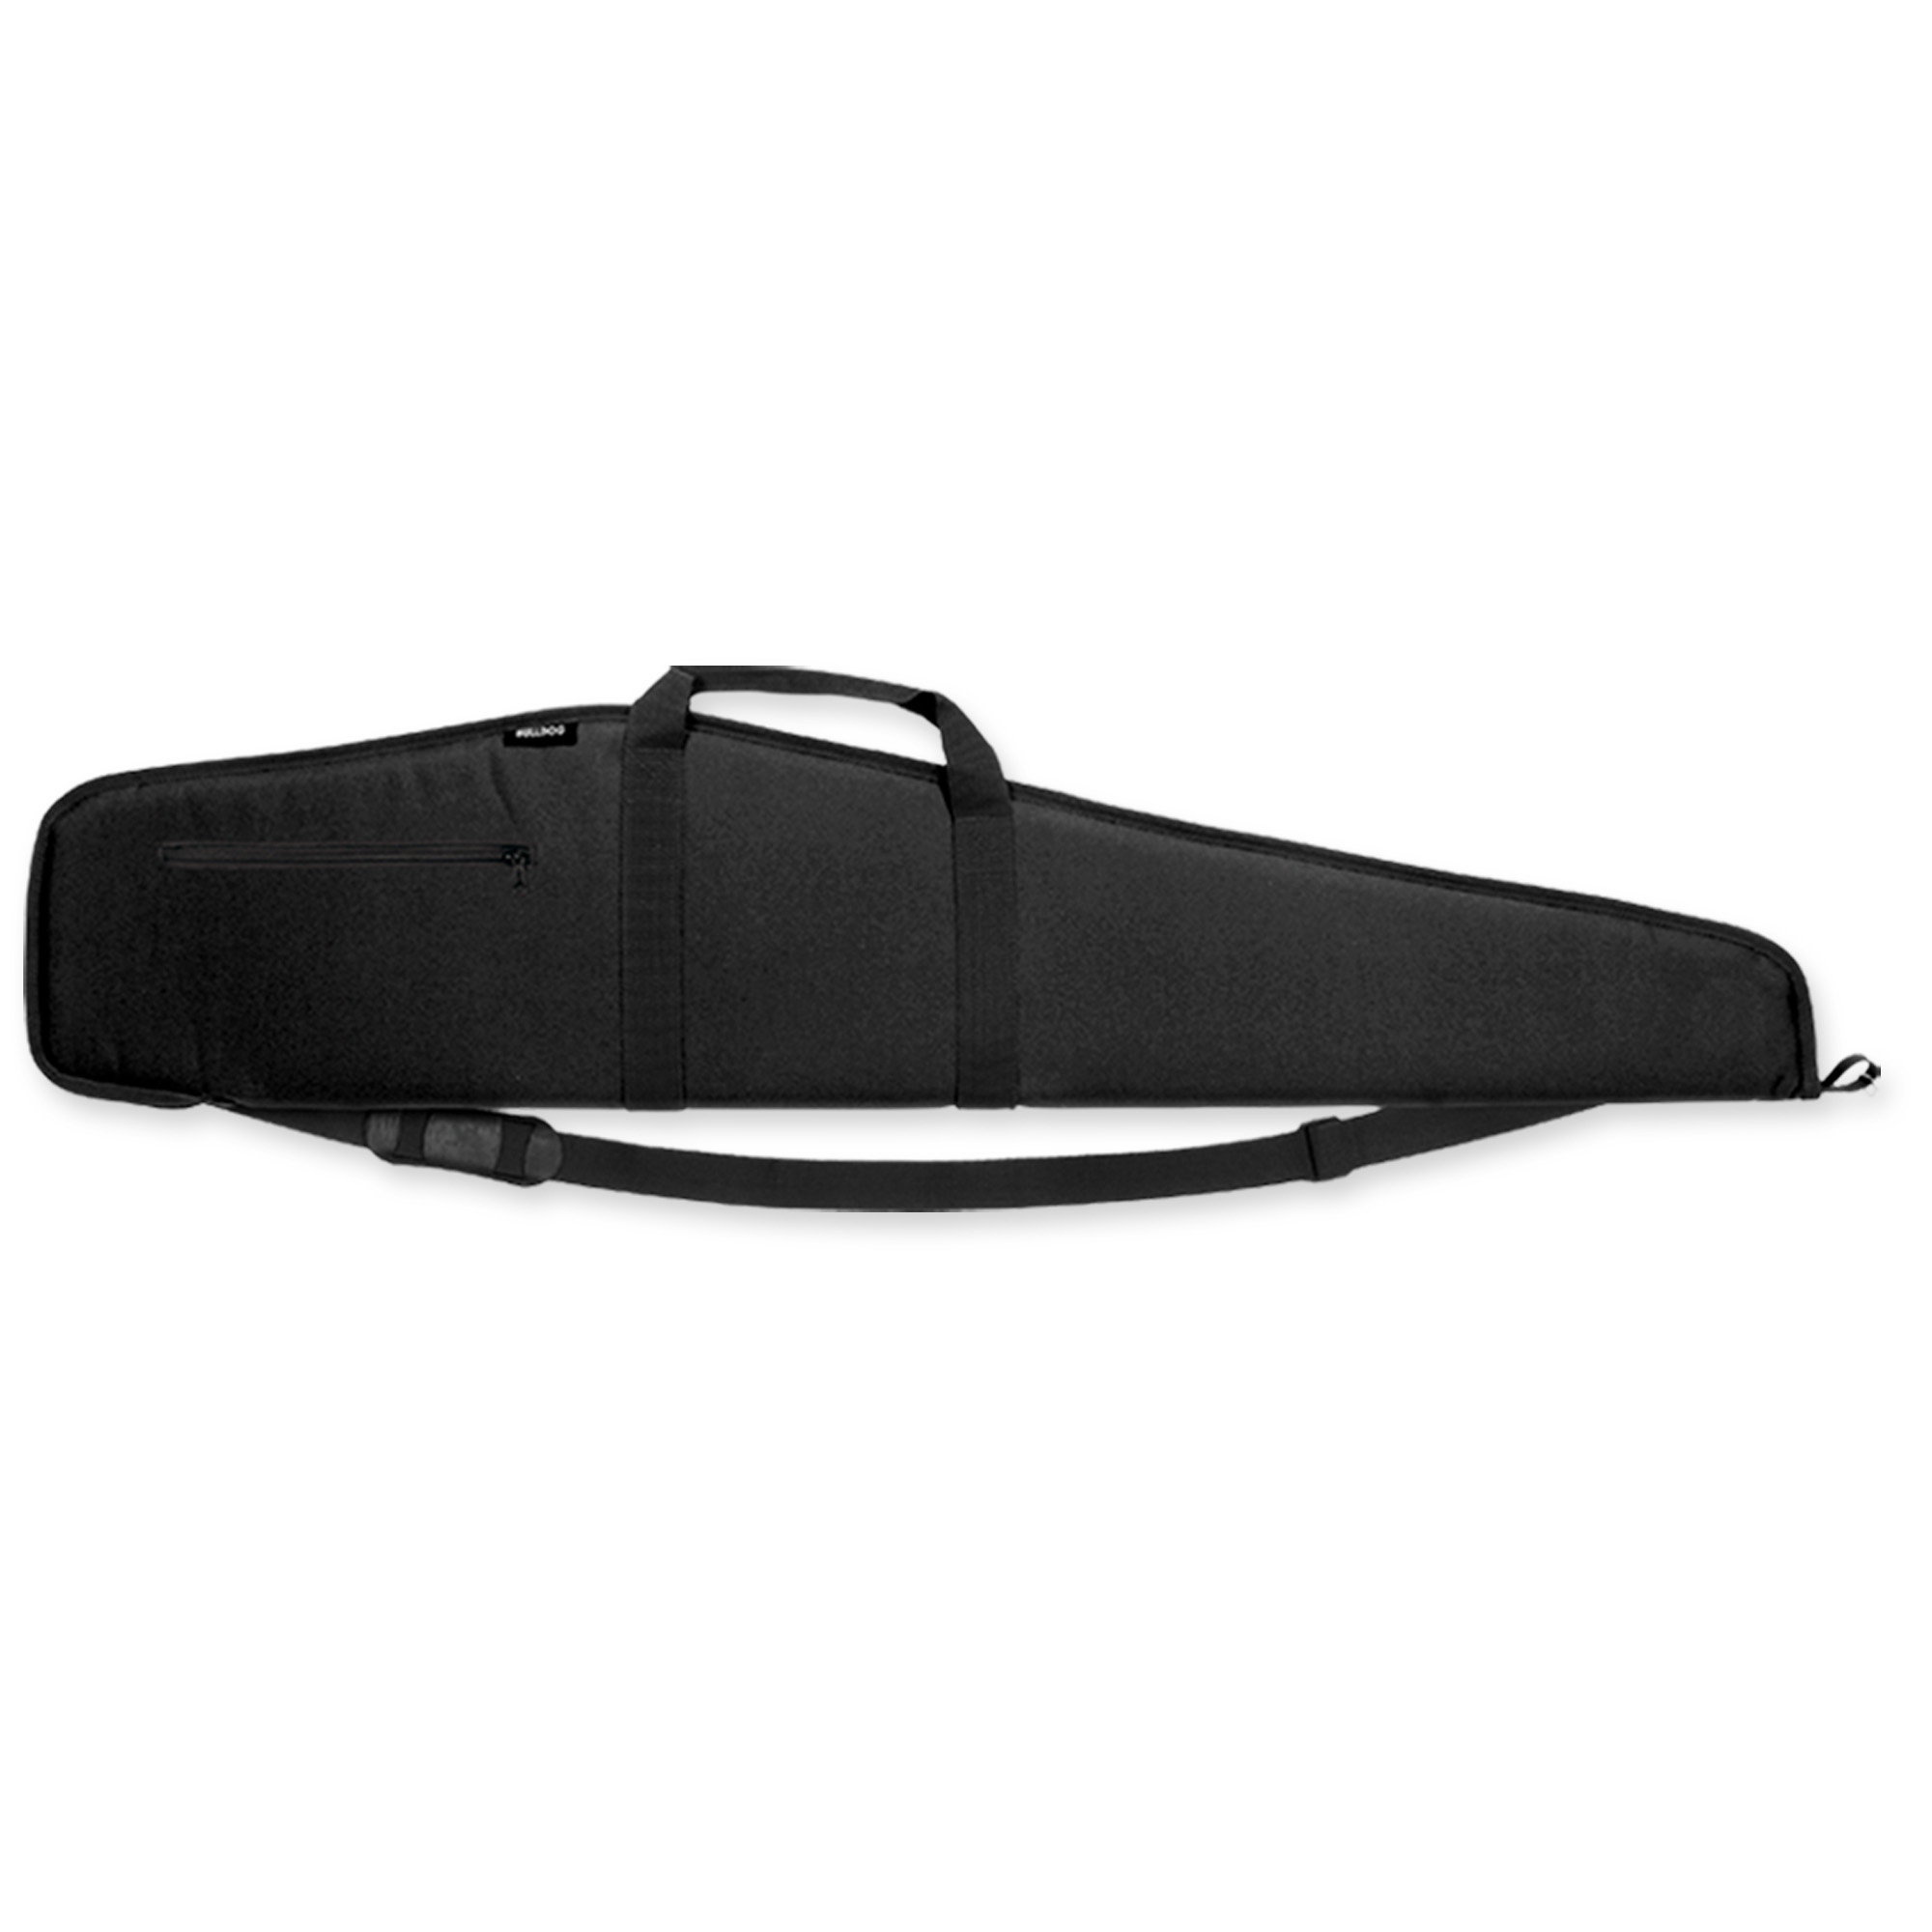 Bulldog Extreme Rifle Case Blk 48